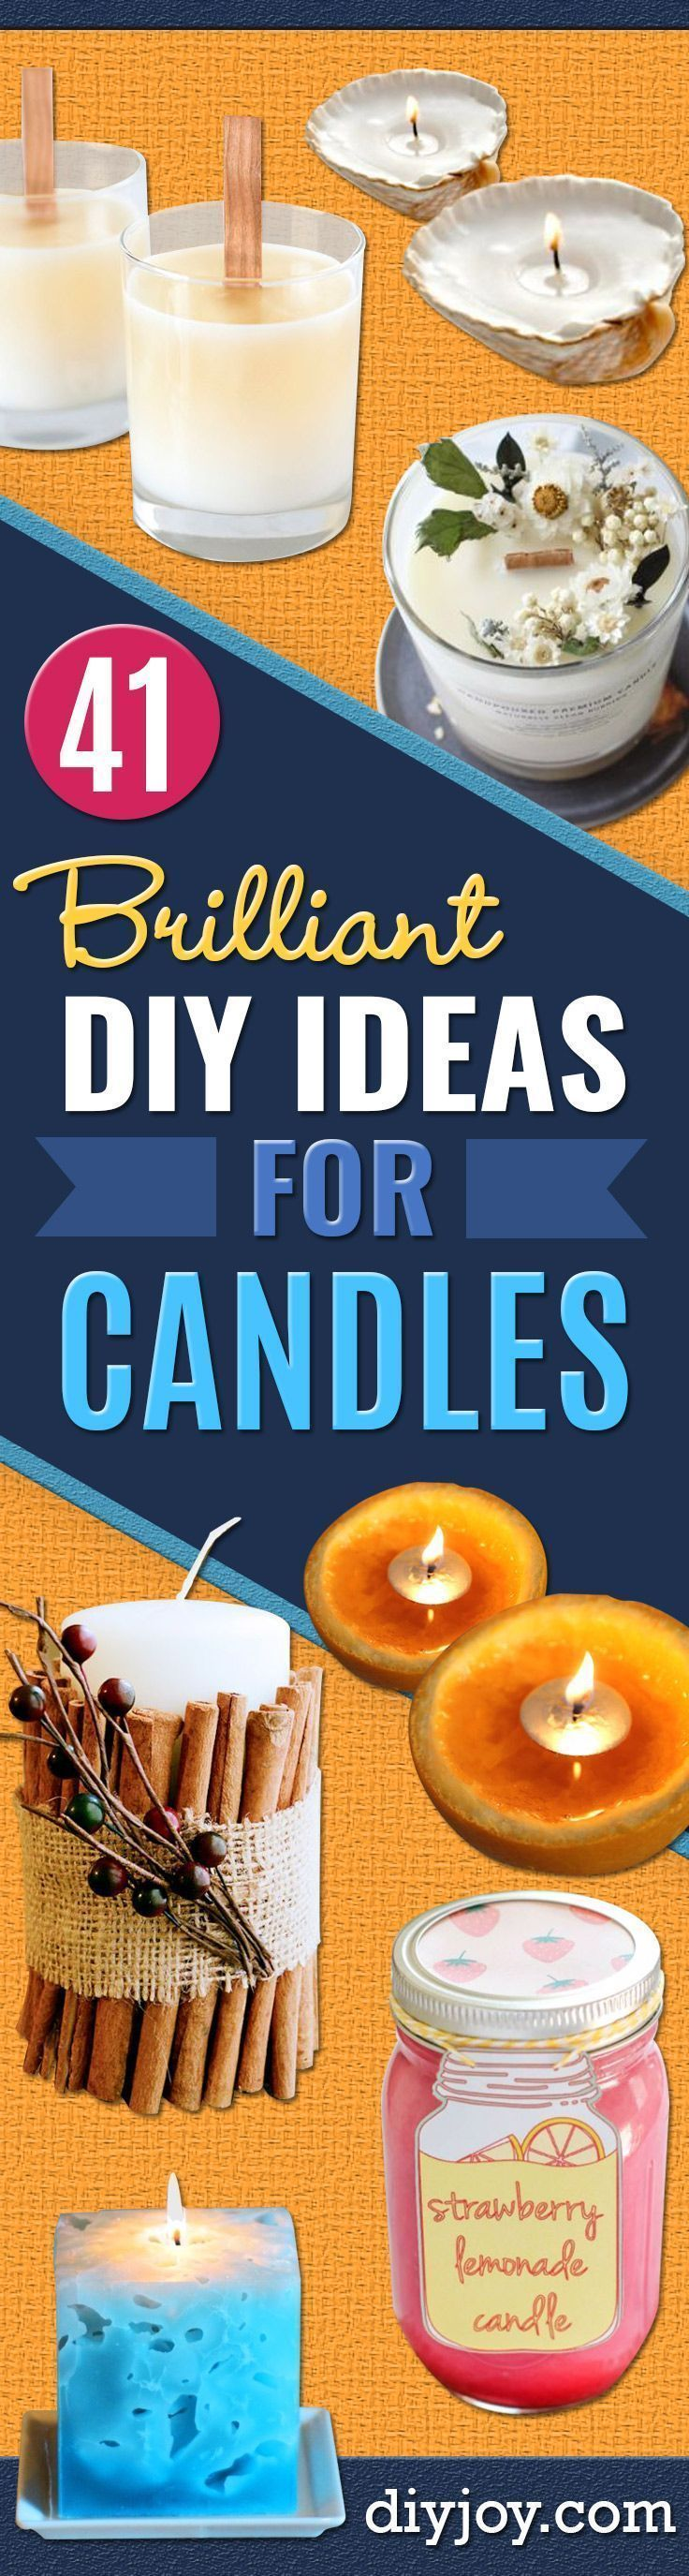 DIY Ideas for Candles - Cute, Cheap and Creative Ways to Decorate With Candles - Votives and Candle Holders Make Some Of Our Favorite Home Decor Ideas and Homemade Do It Yourself Gifts - Give One of These Inexpensive Ideas to Mom, Dad and Friends - Easy Dollar Store Crafts With Candle http://diyjoy.com/diy-ideas-candles #candlemakingideas